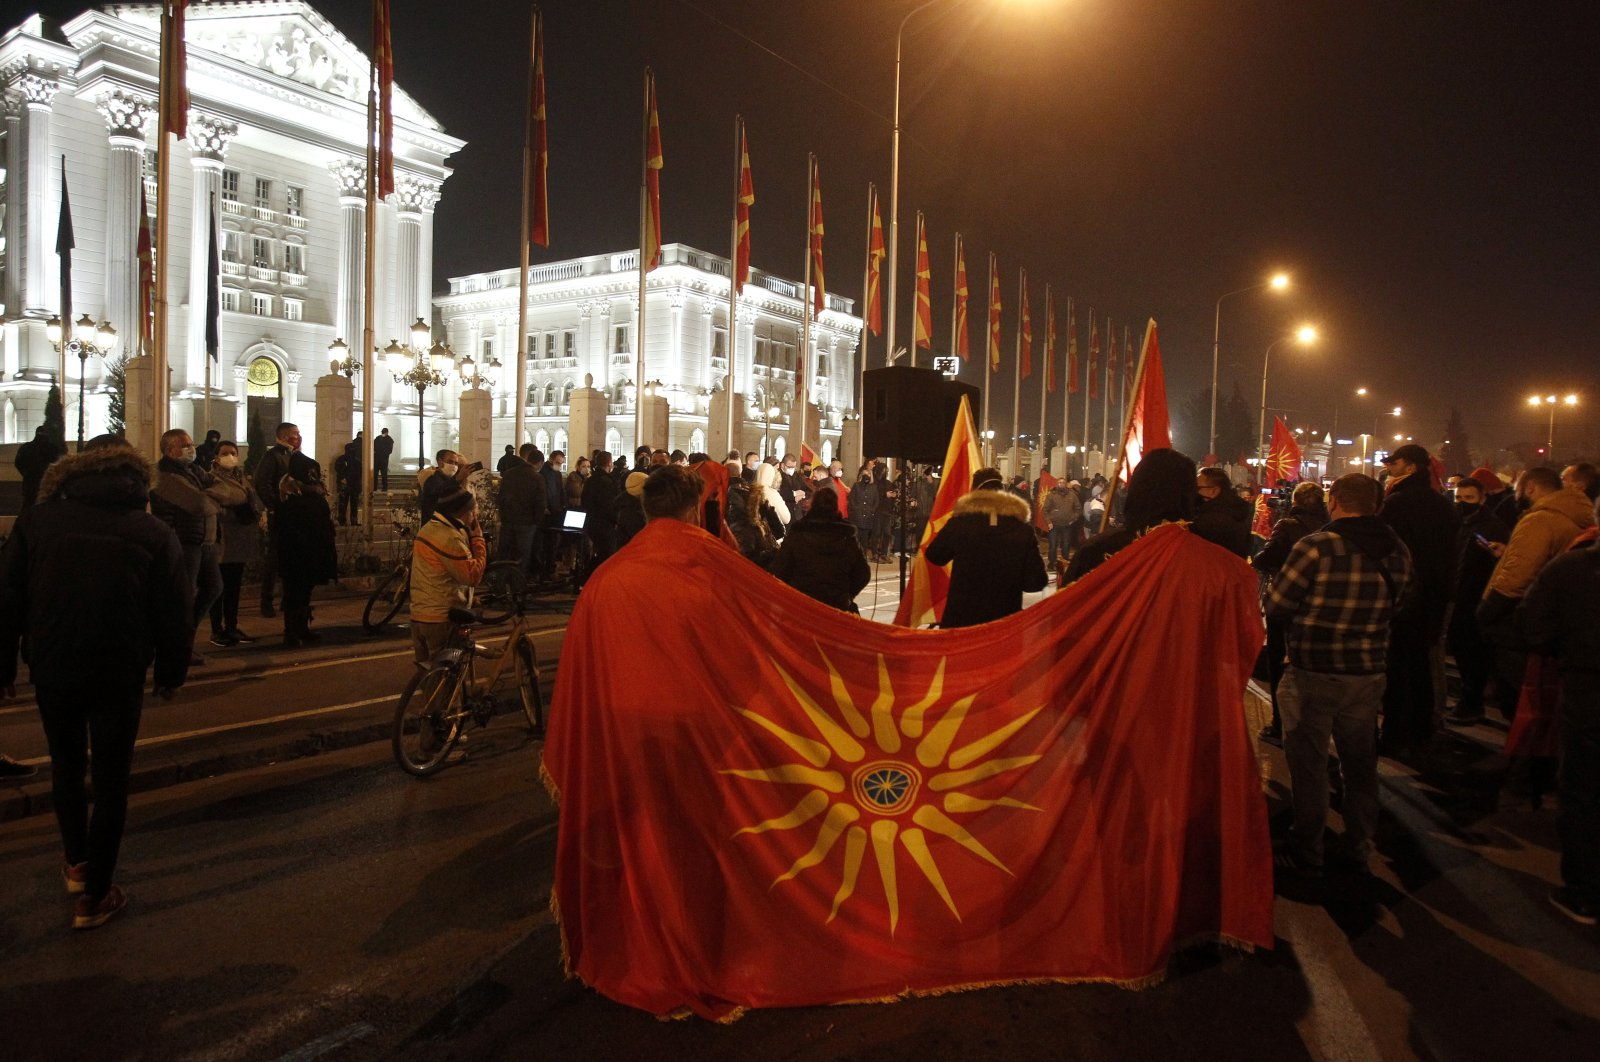 Two men hold an old national flag as opposition supporters gather to protest the government's policy toward Bulgaria, in front of the government building, Skopje, North Macedonia, Nov. 26, 2020. (AP Photo)